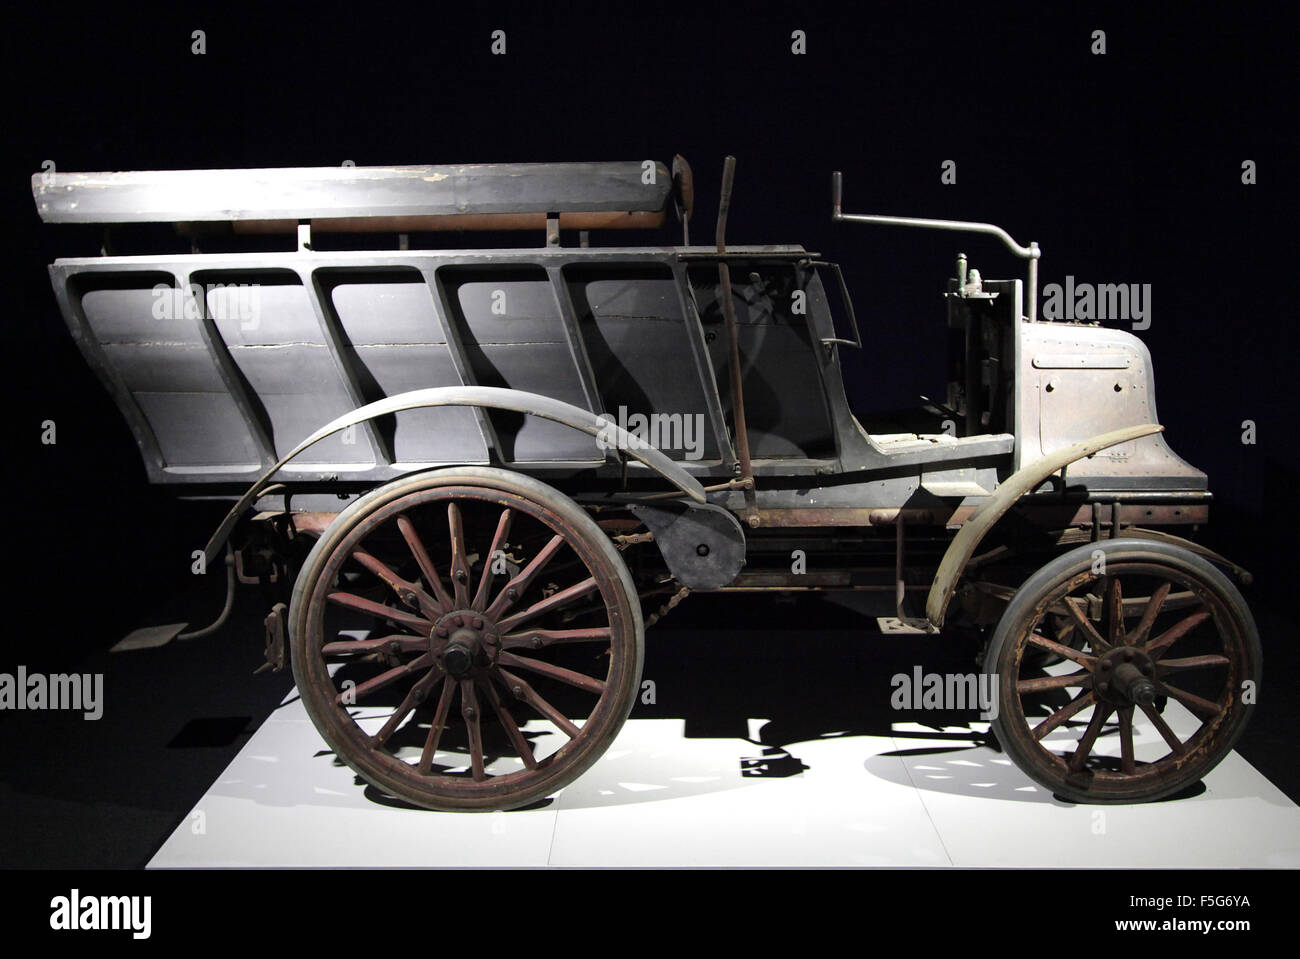 Old car daimler 6 HP 1897 twin cylinder - Stock Image